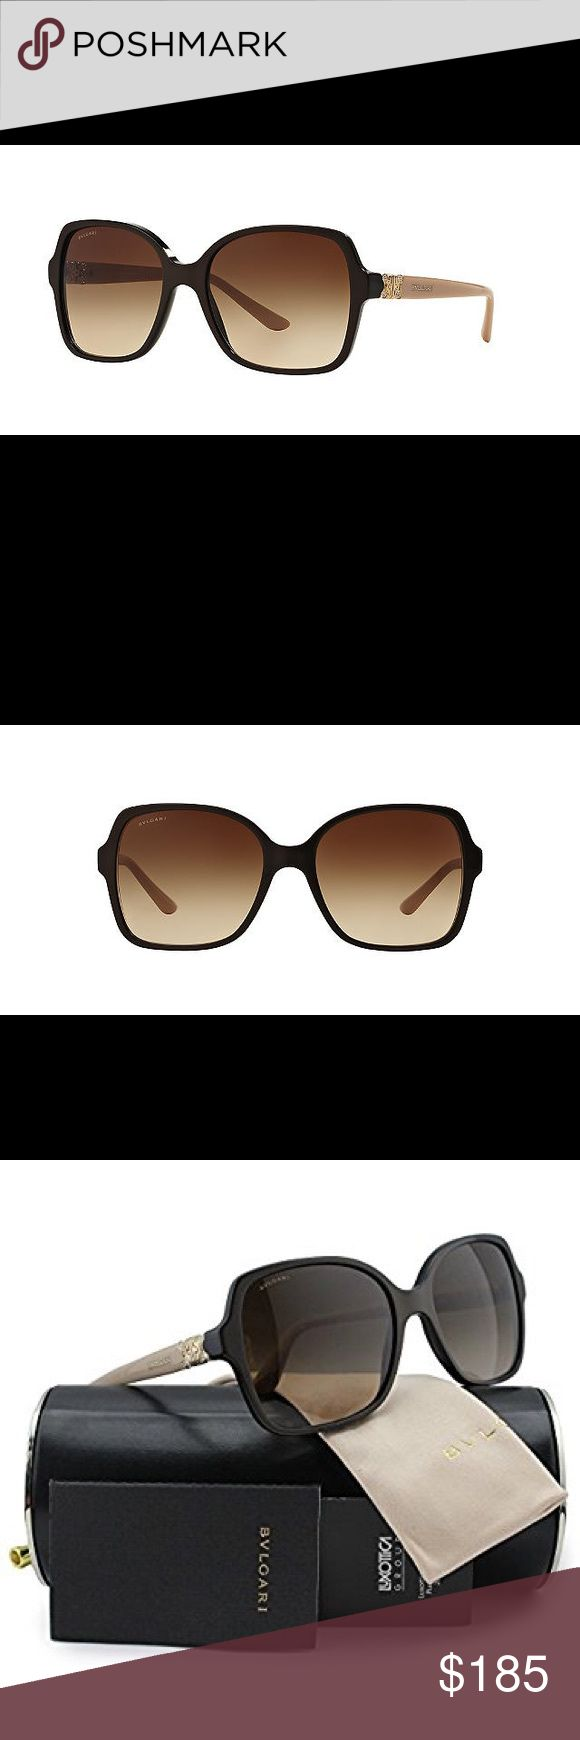 🌟Gorgeous Oversized Blvgari Sunglasses w/Crystals Bvlgari BV8106B Sunglasses Brown Gradient Lenses  This gorgeous pair of BV8106B oversized Bvlgari Sunglasses has Cream frames with brown gradient lenses. They come pre owned in perfect condition; with everything you see in the pictures. Guaranteed authentic or your money back! I bought these for $525 a year ago...Rare opportunity to get this at a steal    Product Description  Frame colour: Brown  Lens: 59 mm Bridge: 16 mm Temple Length: 125…